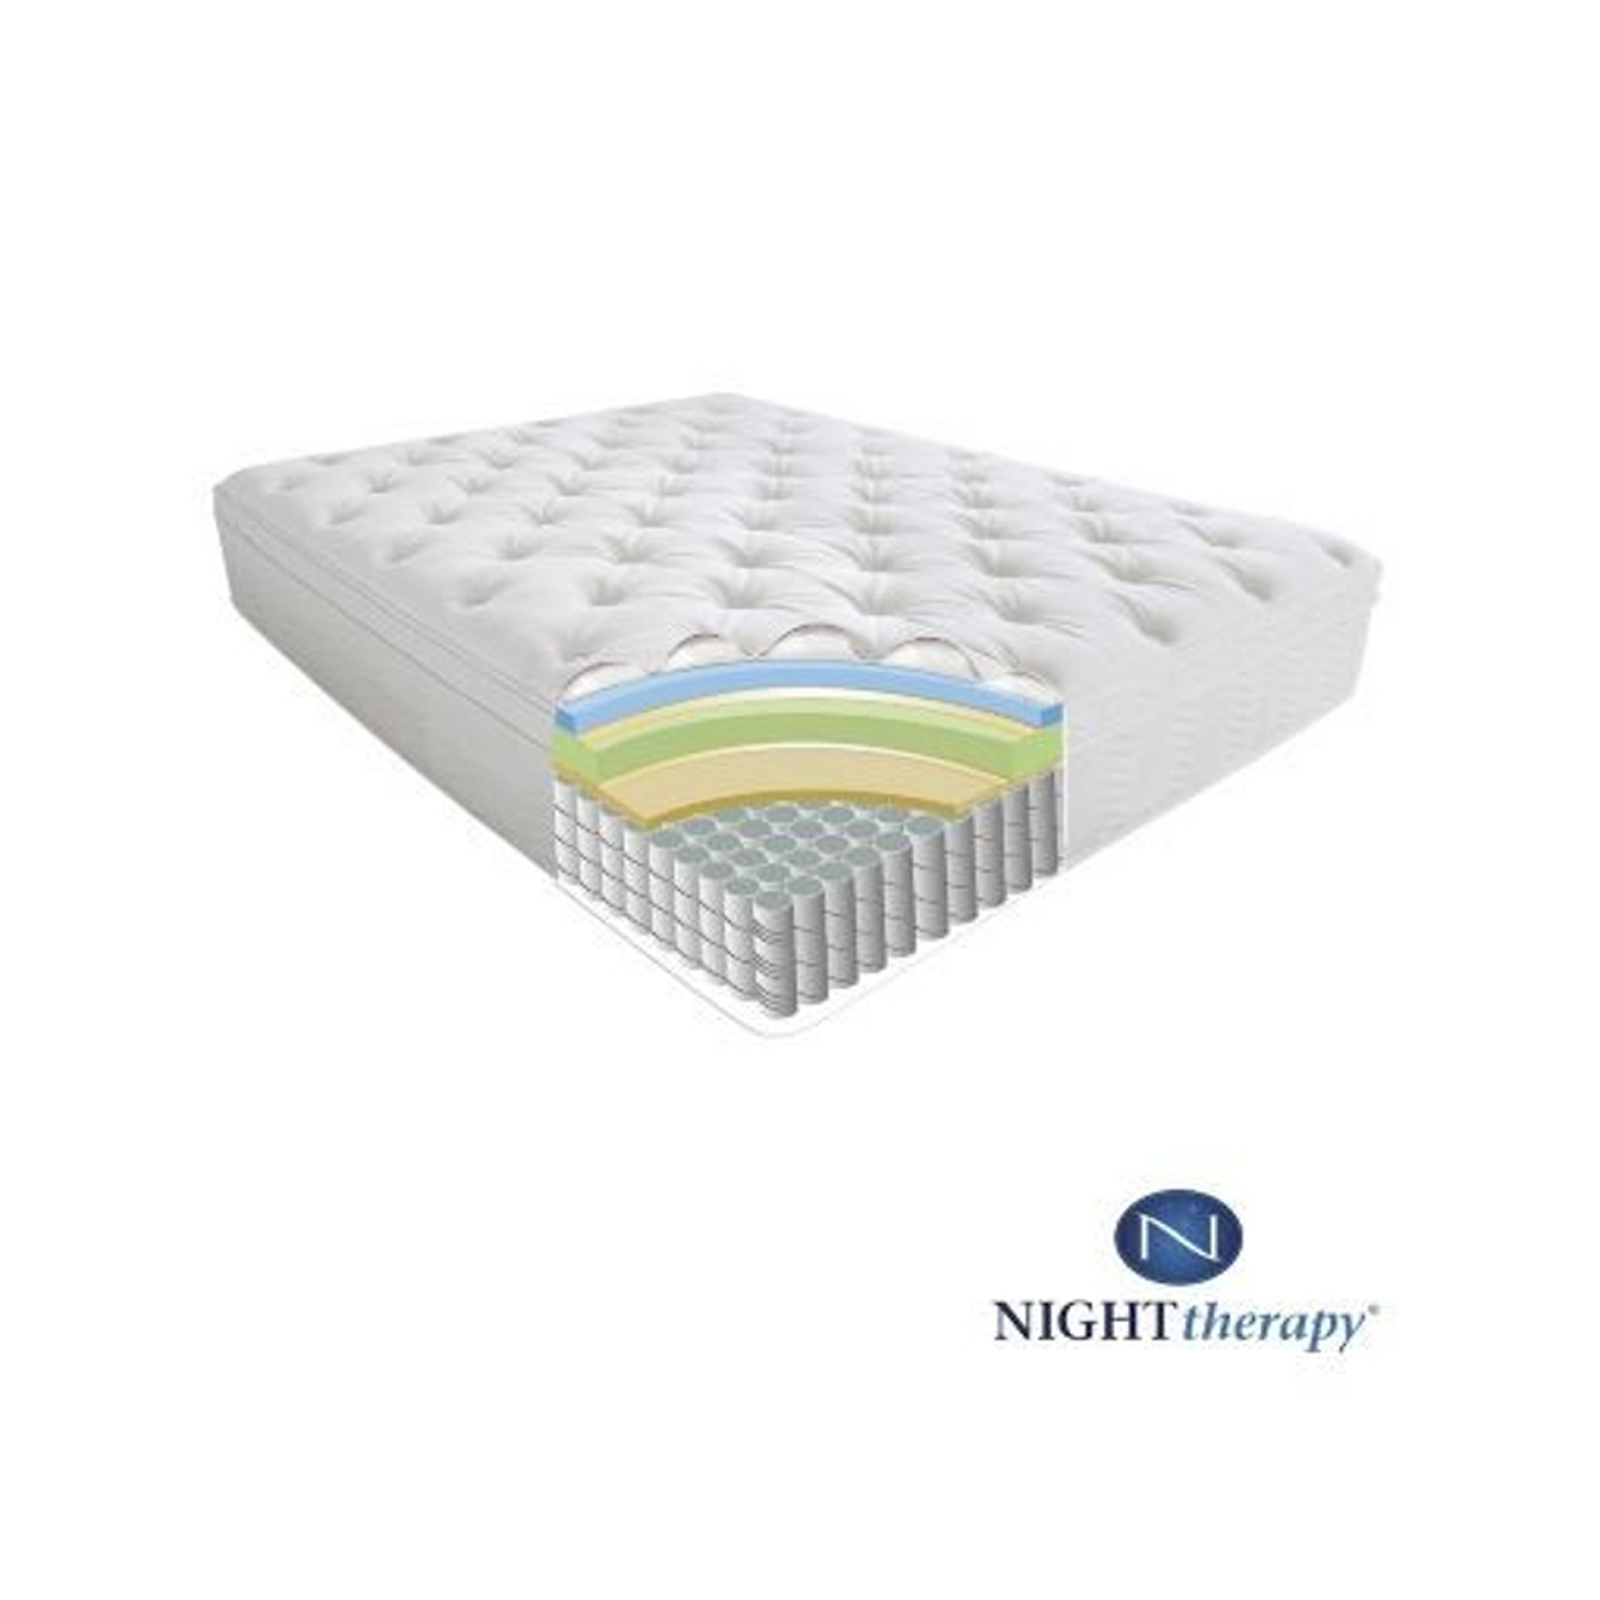 Night Therapy 12 Inch Spring Queen Mattress Only